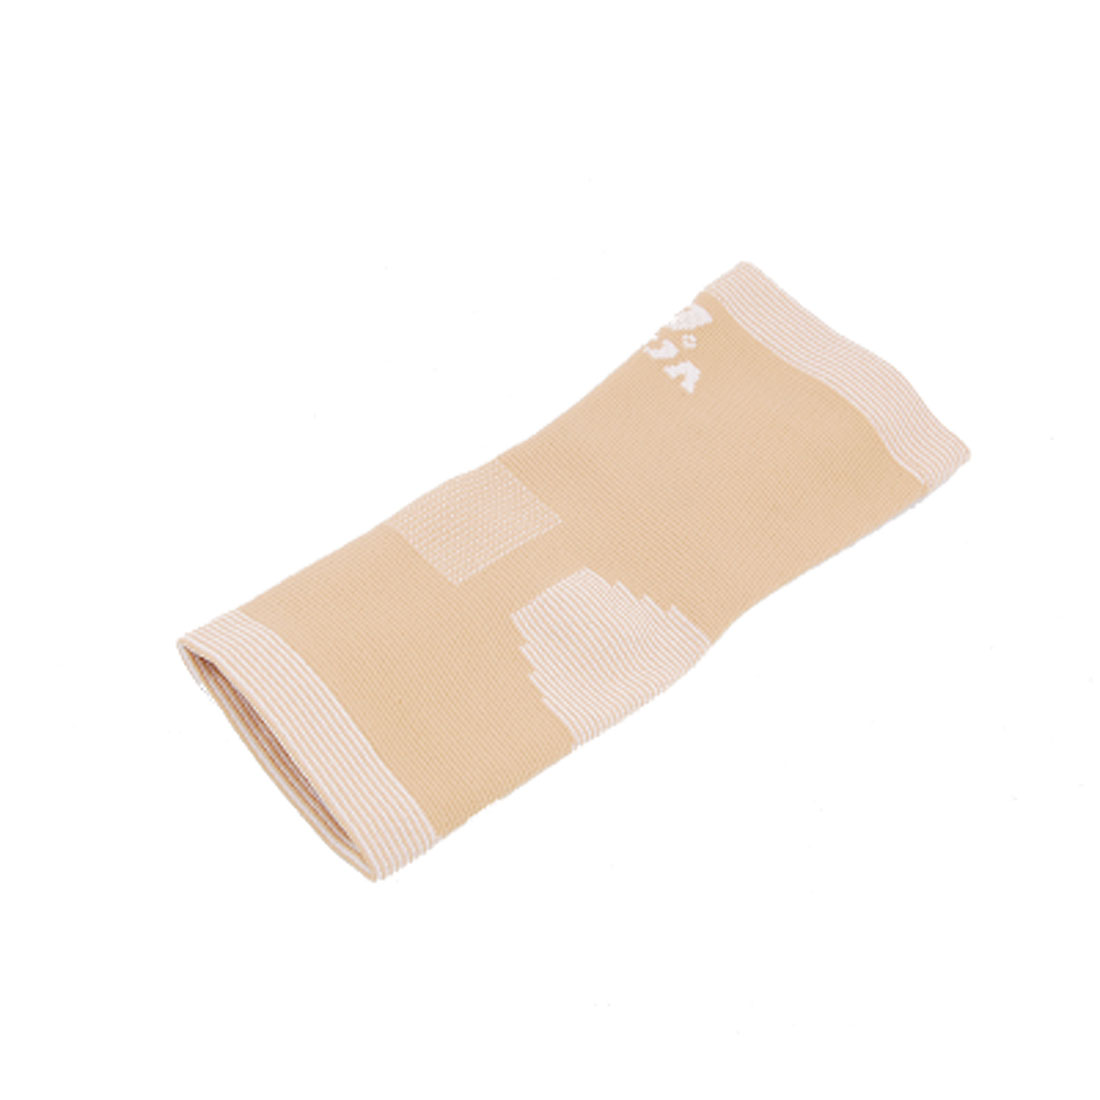 Beige Elastic Sporting Protective Gear Ankle Support Size S